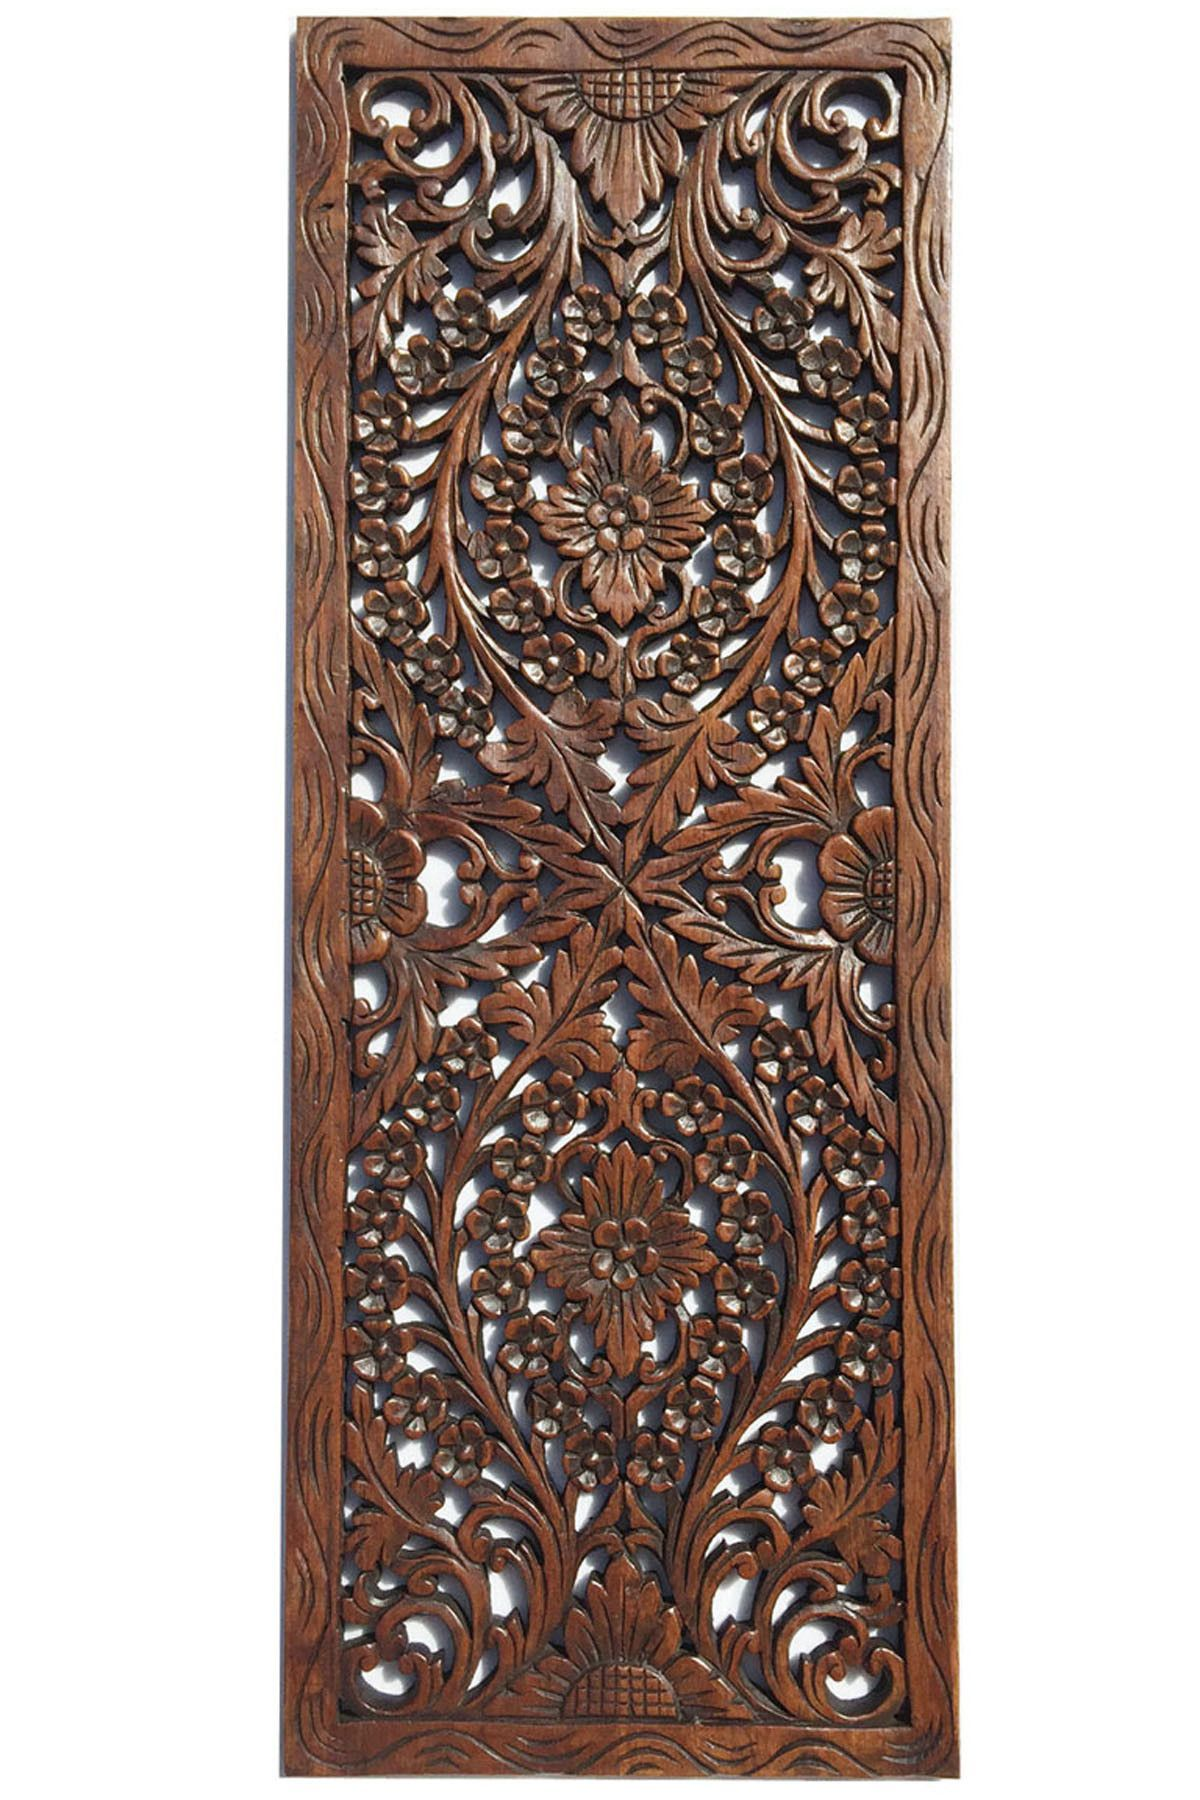 Wood Panel Wall Decor floral wood carved wall panel. wall hanging. asian home decor